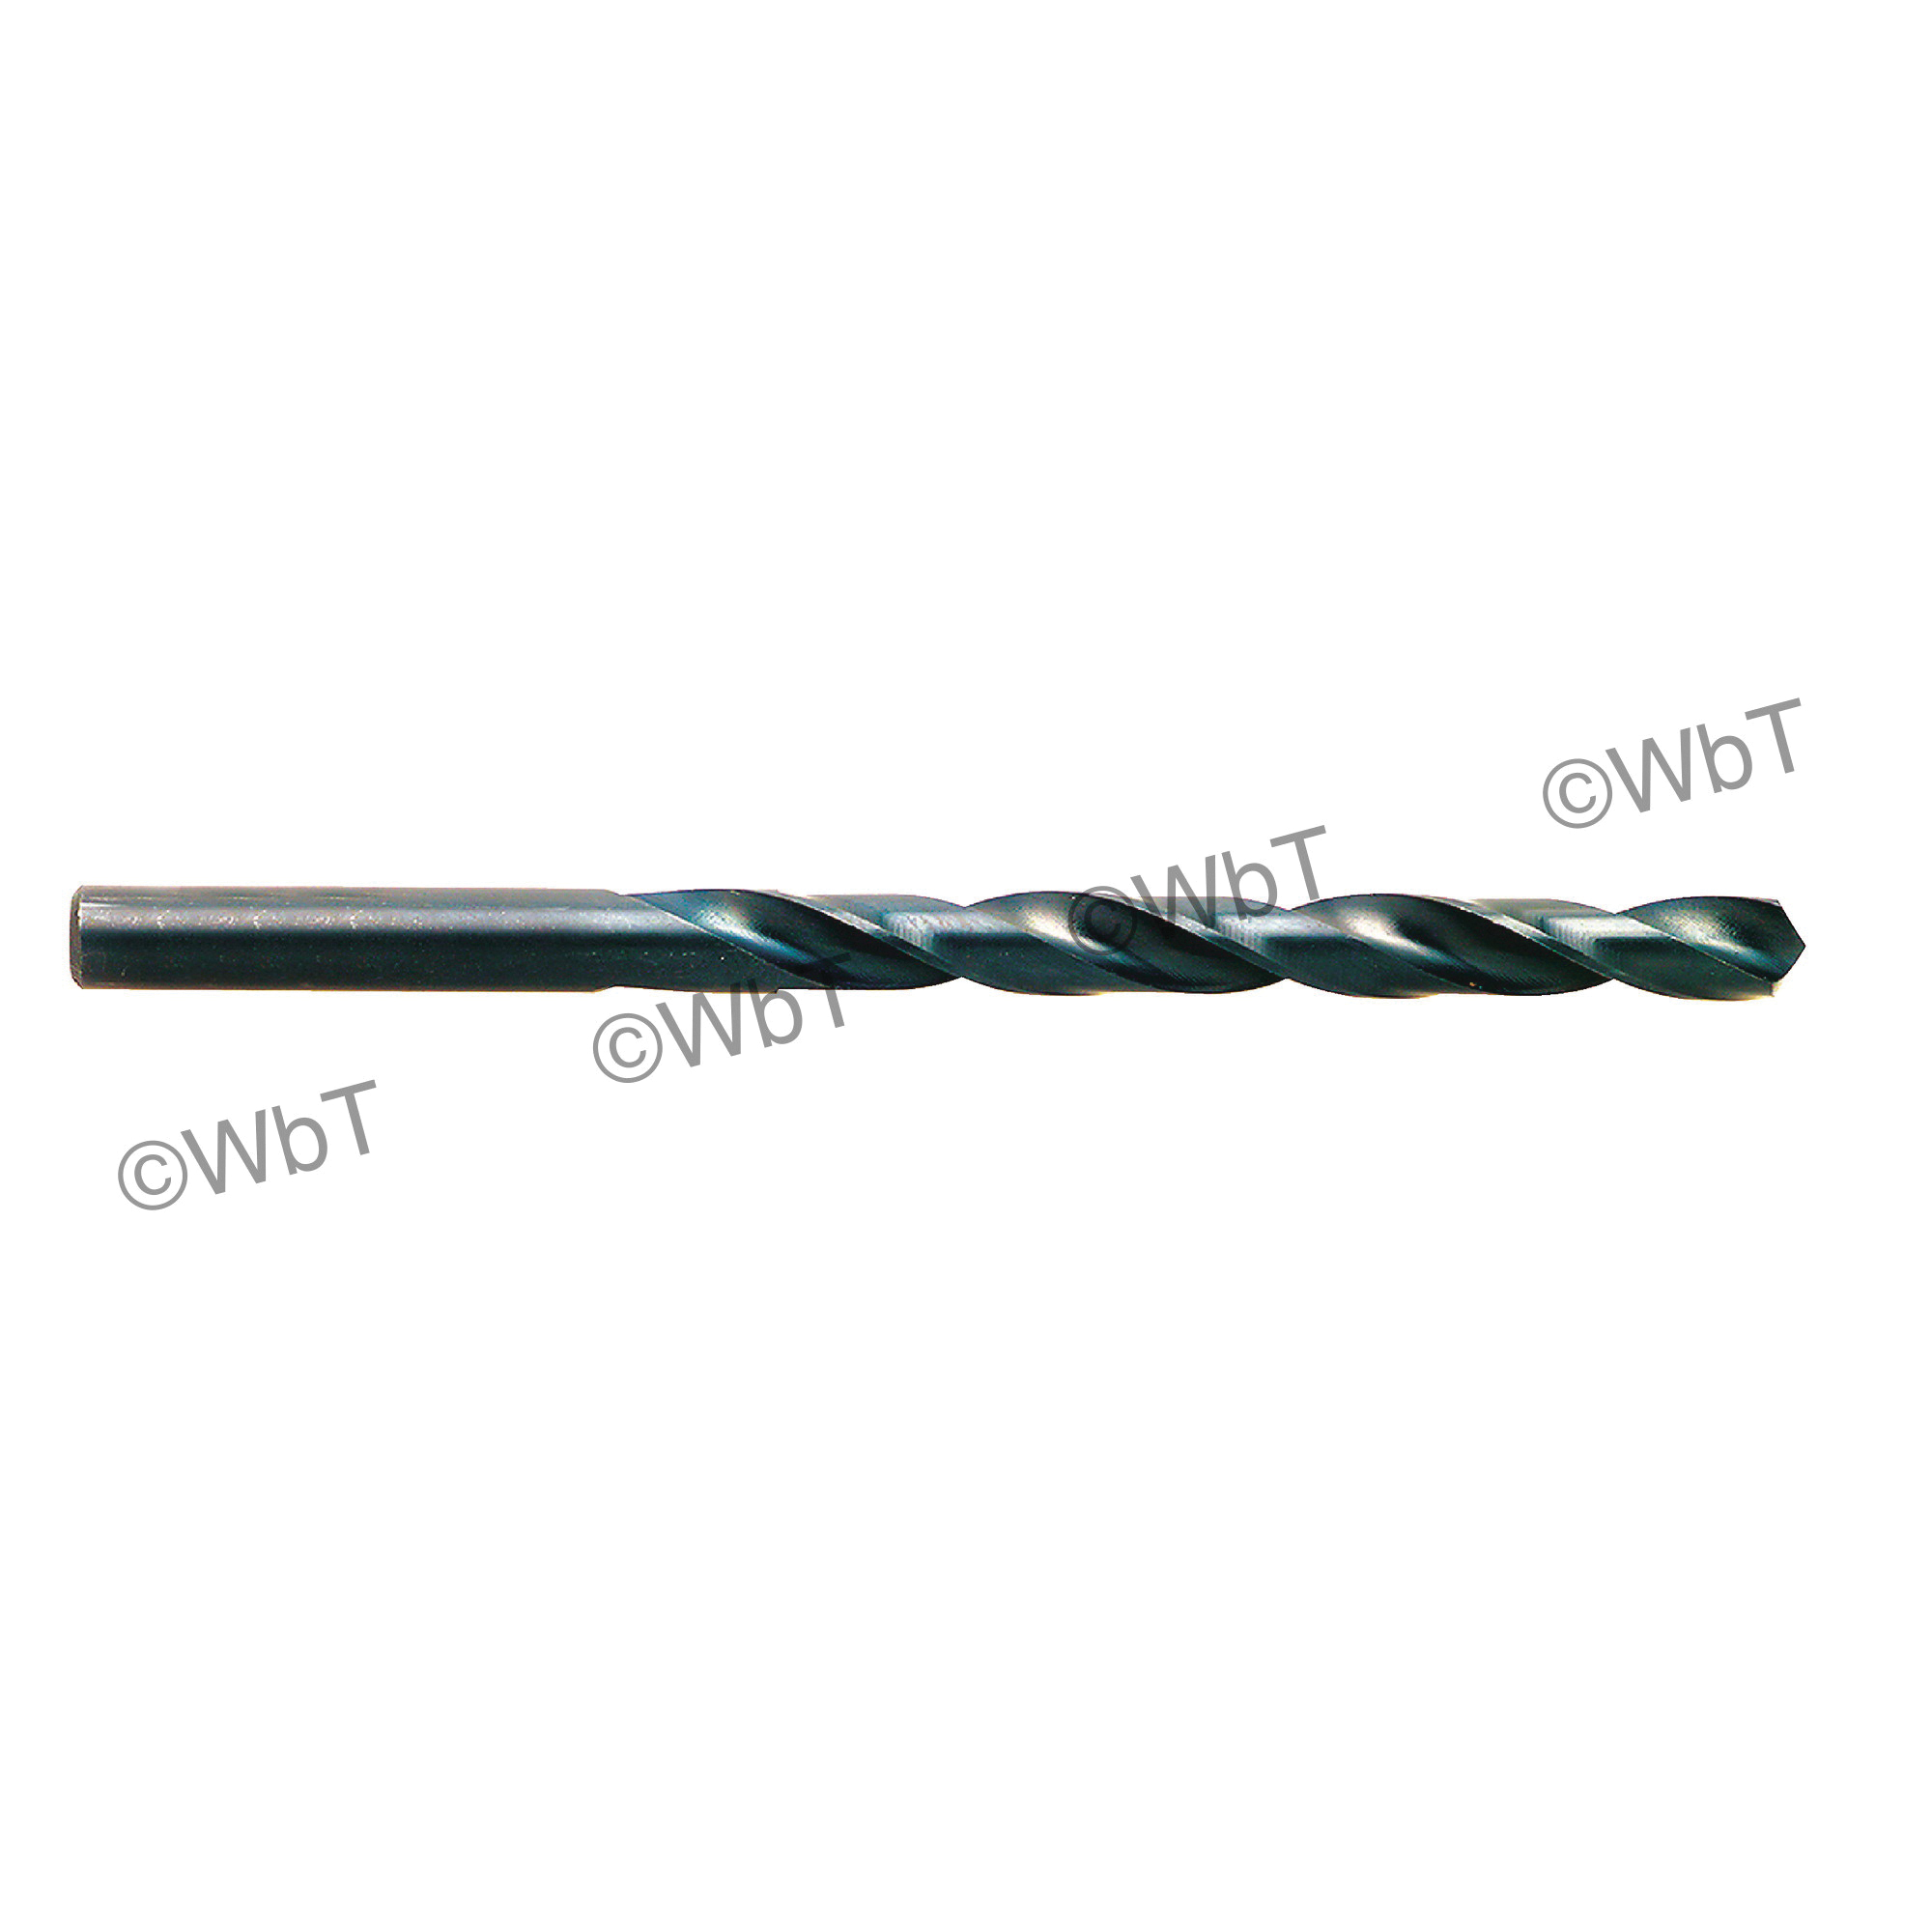 TTC 01-001-001 A1 Series Surface Treated Jobber Length Drill Bit, 1/64 in Drill - Fraction, 0.0156 in Drill - Decimal Inch, 118 deg Point, HSS, Black Oxide